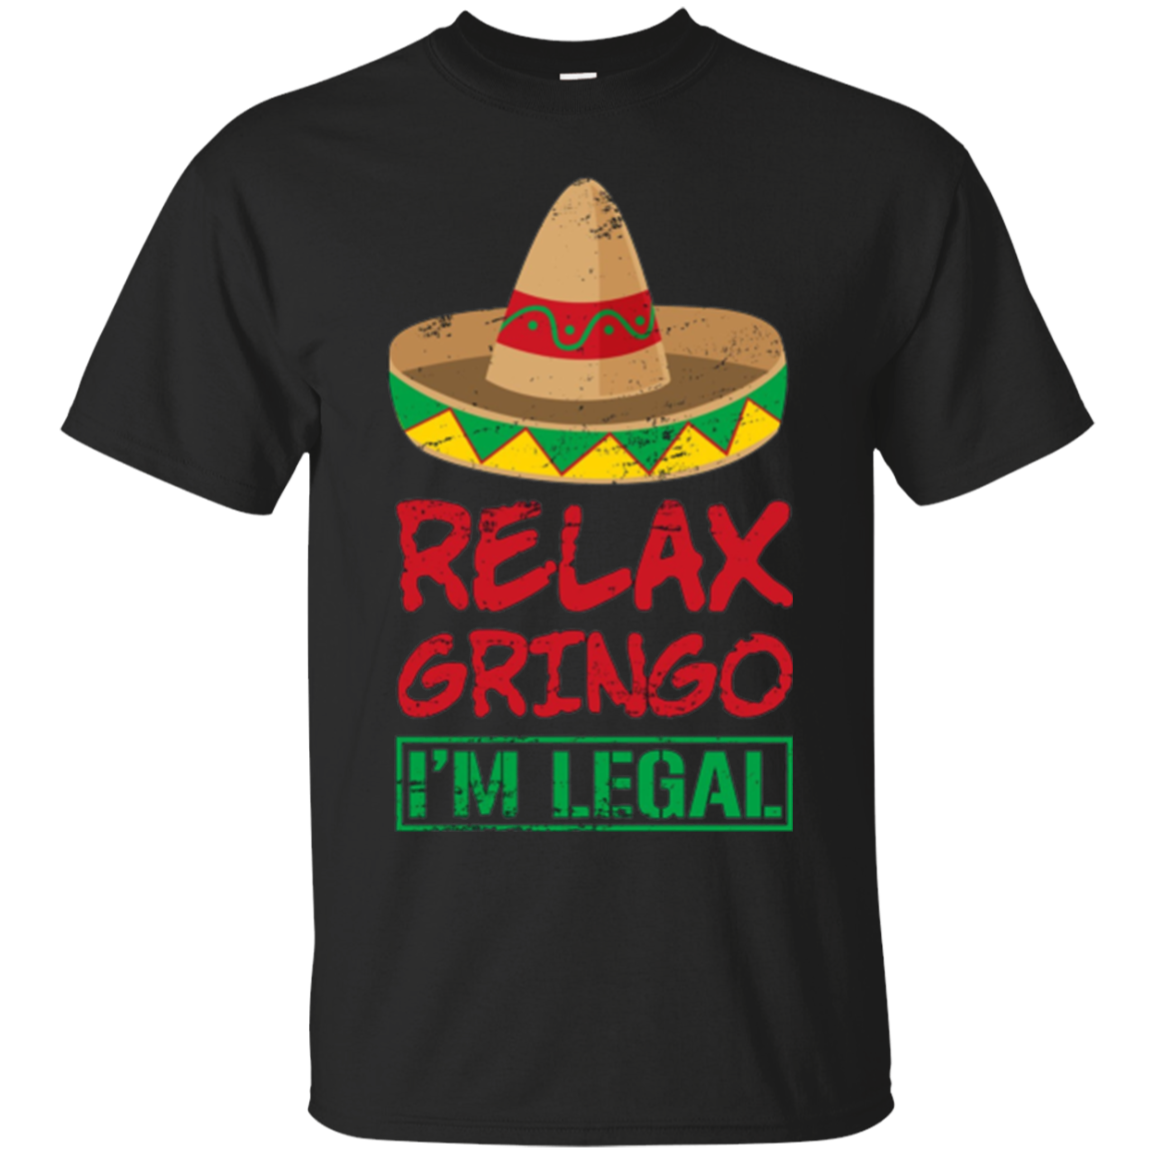 Relax Gringo I'm Legal T-Shirt Funny Mexican Tshirt Gifts